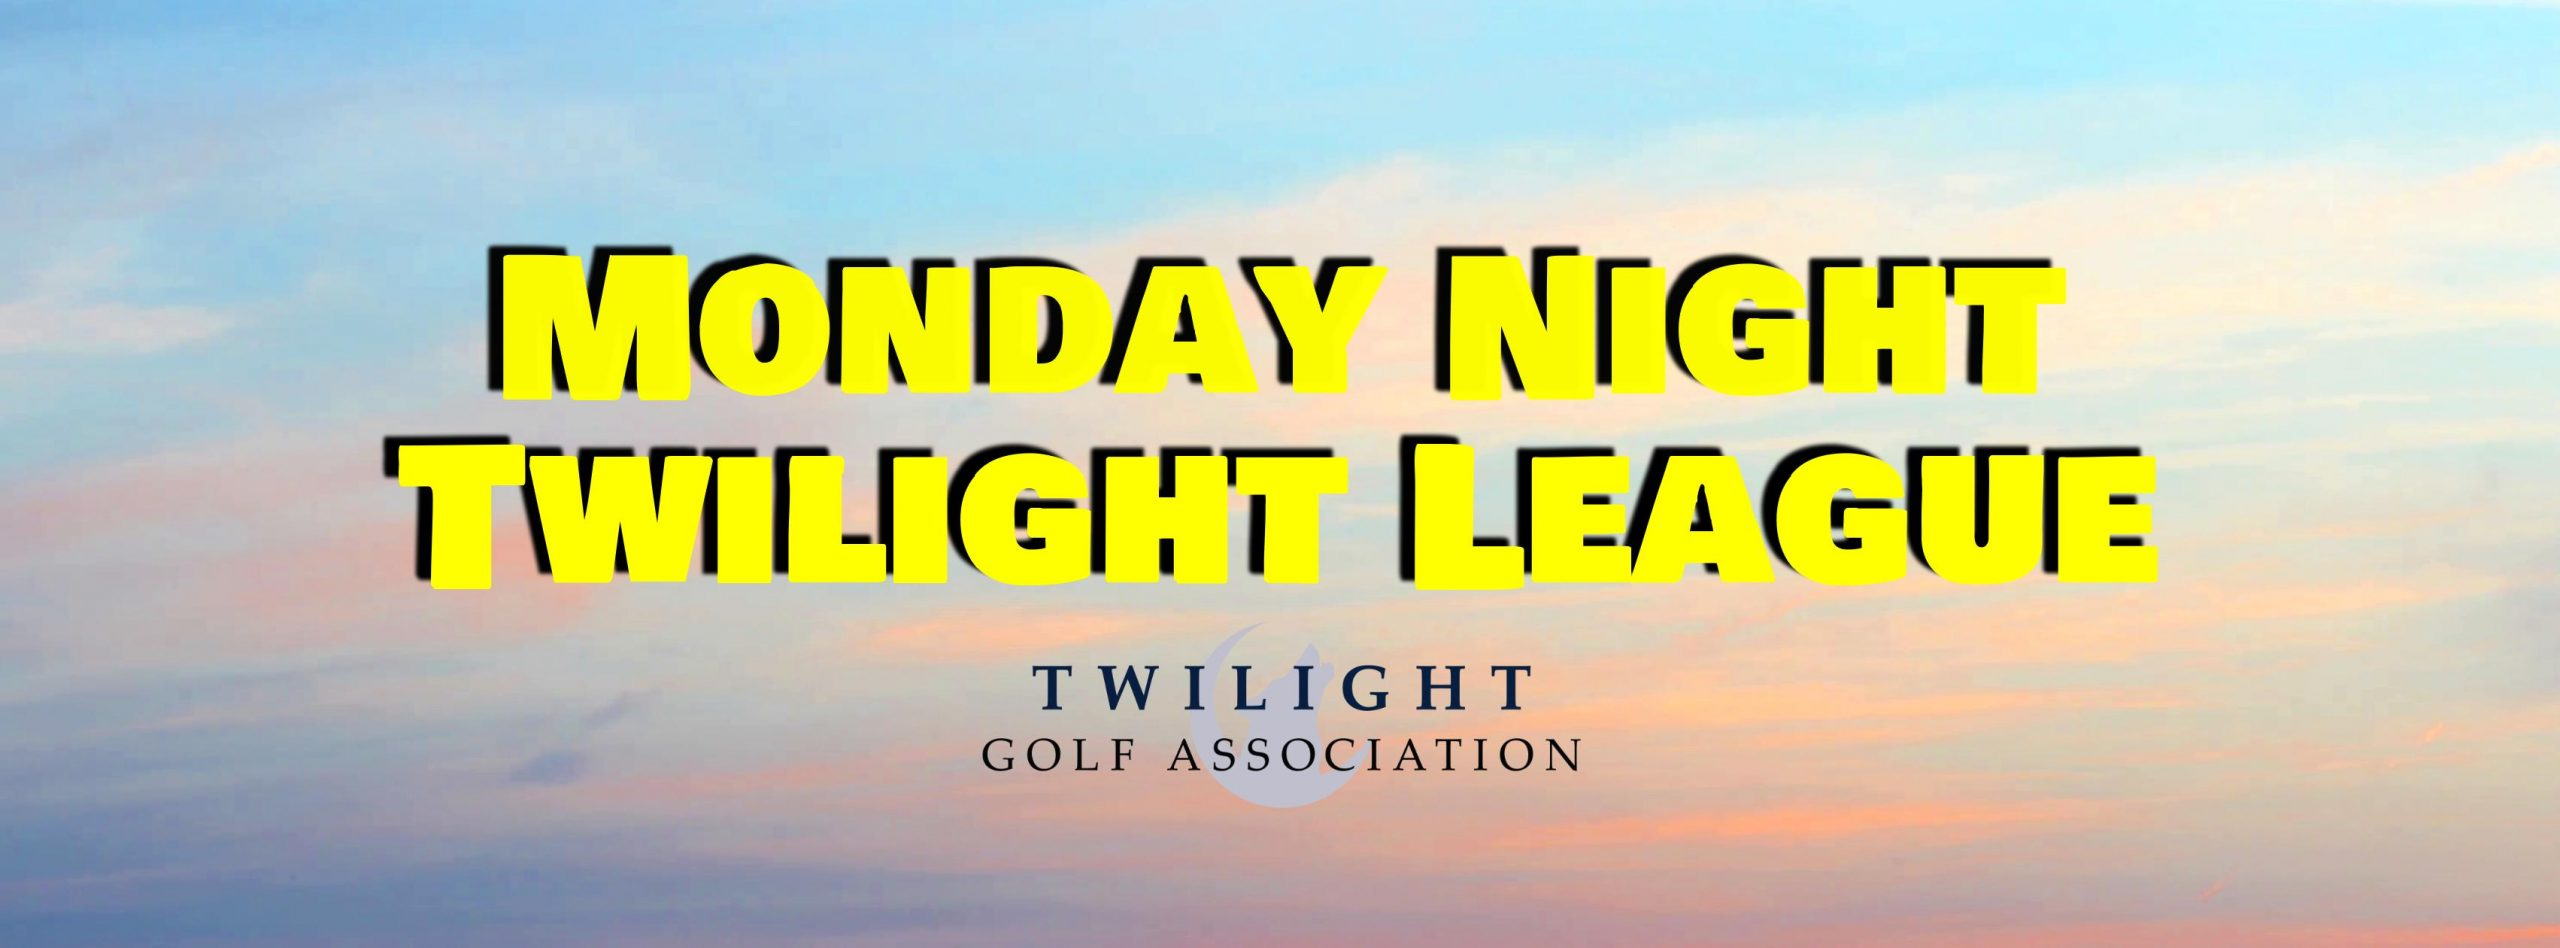 Monday Night Twilight League at Walnut Lane Golf Club